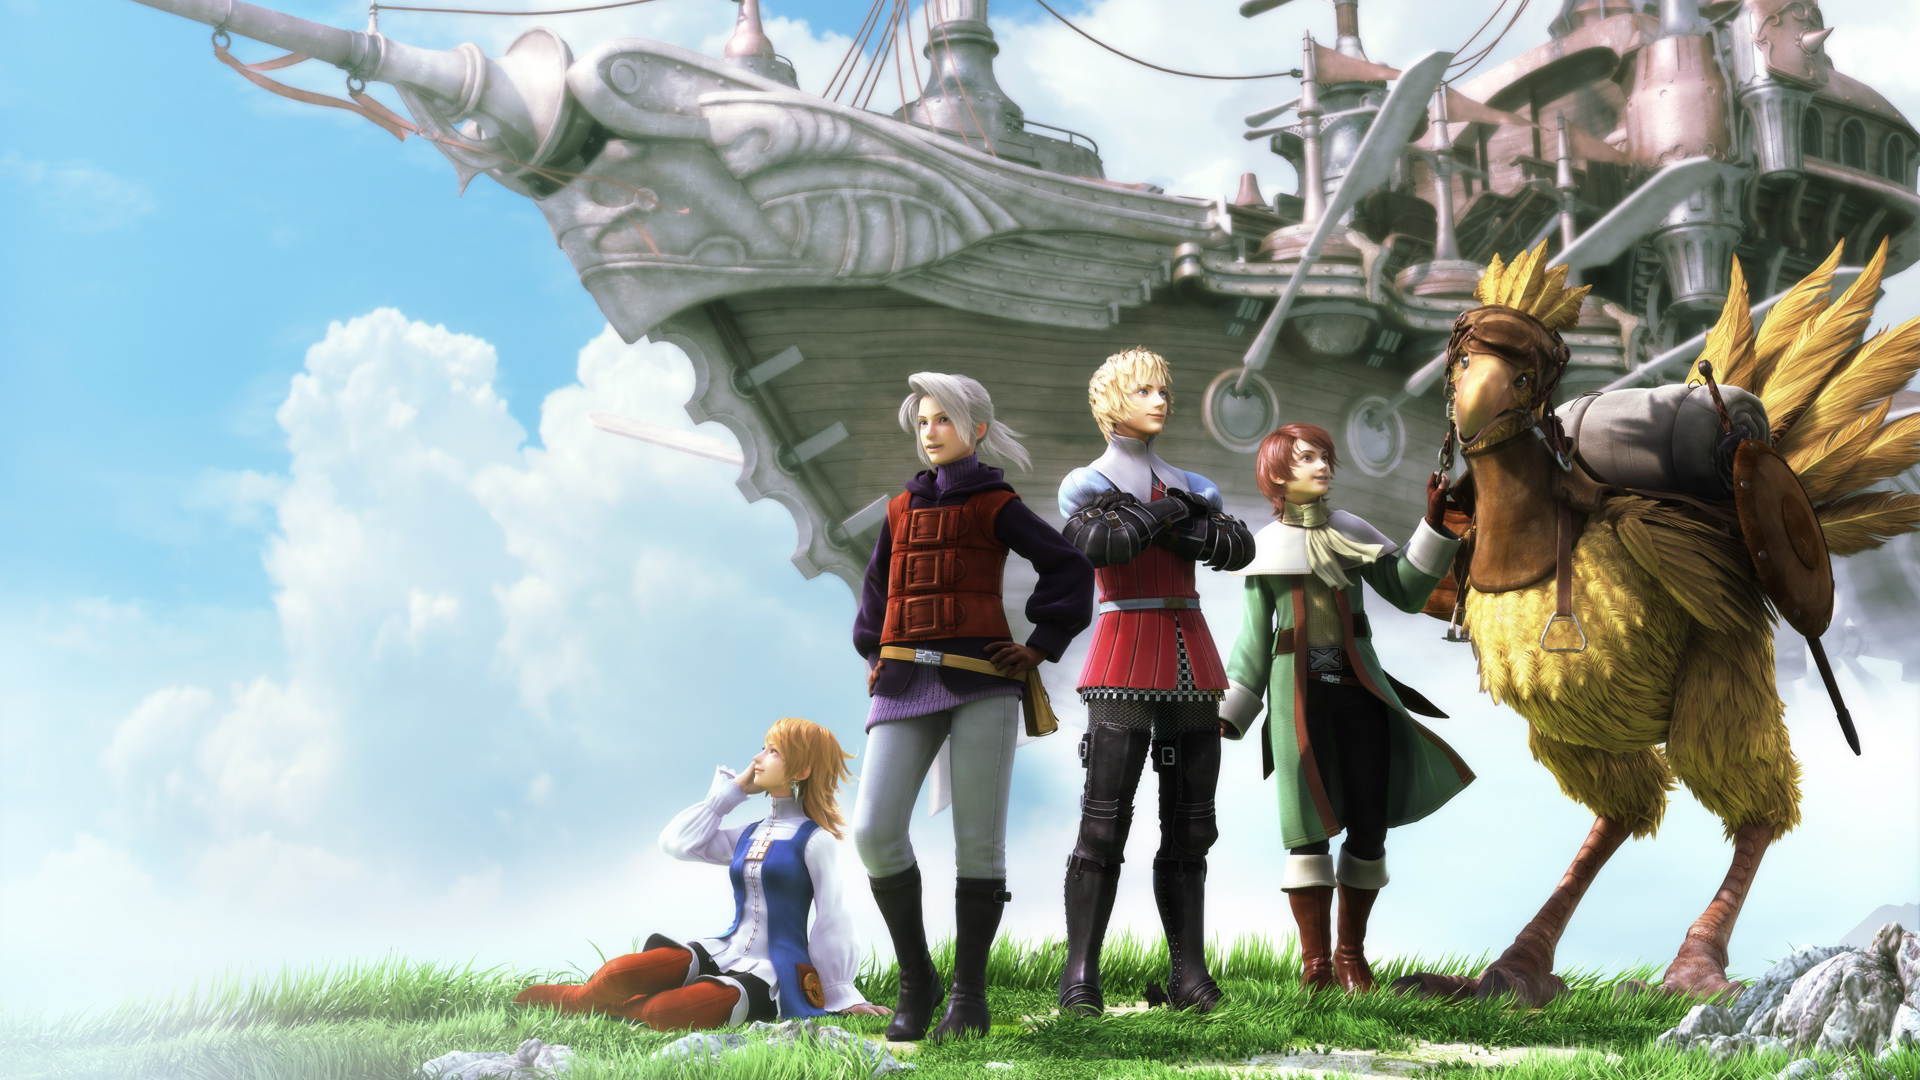 Final Fantasy III Wallpaper 013 – Together